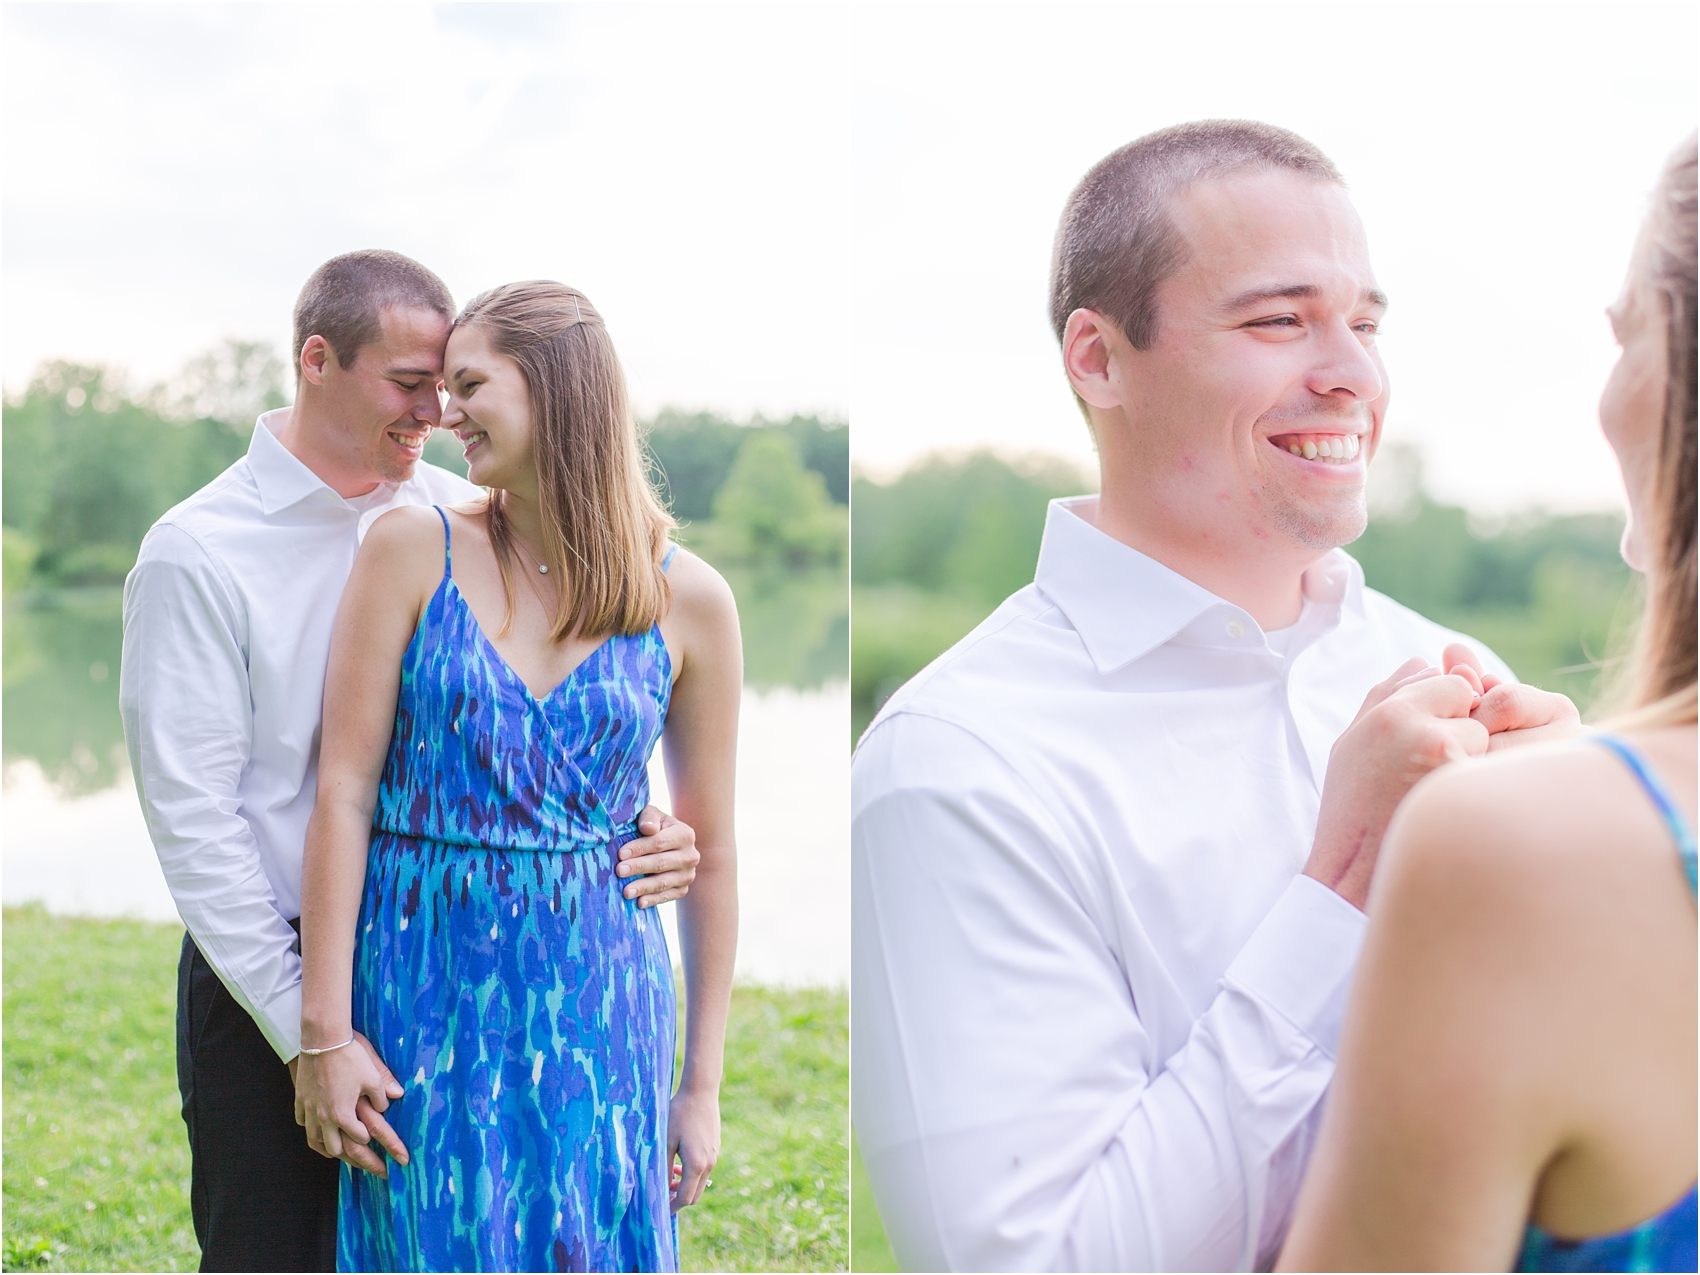 light-hearted-sunset-engagement-photos-at-the-beach-in-oregon-oh-by-courtney-carolyn-photography_0007.jpg